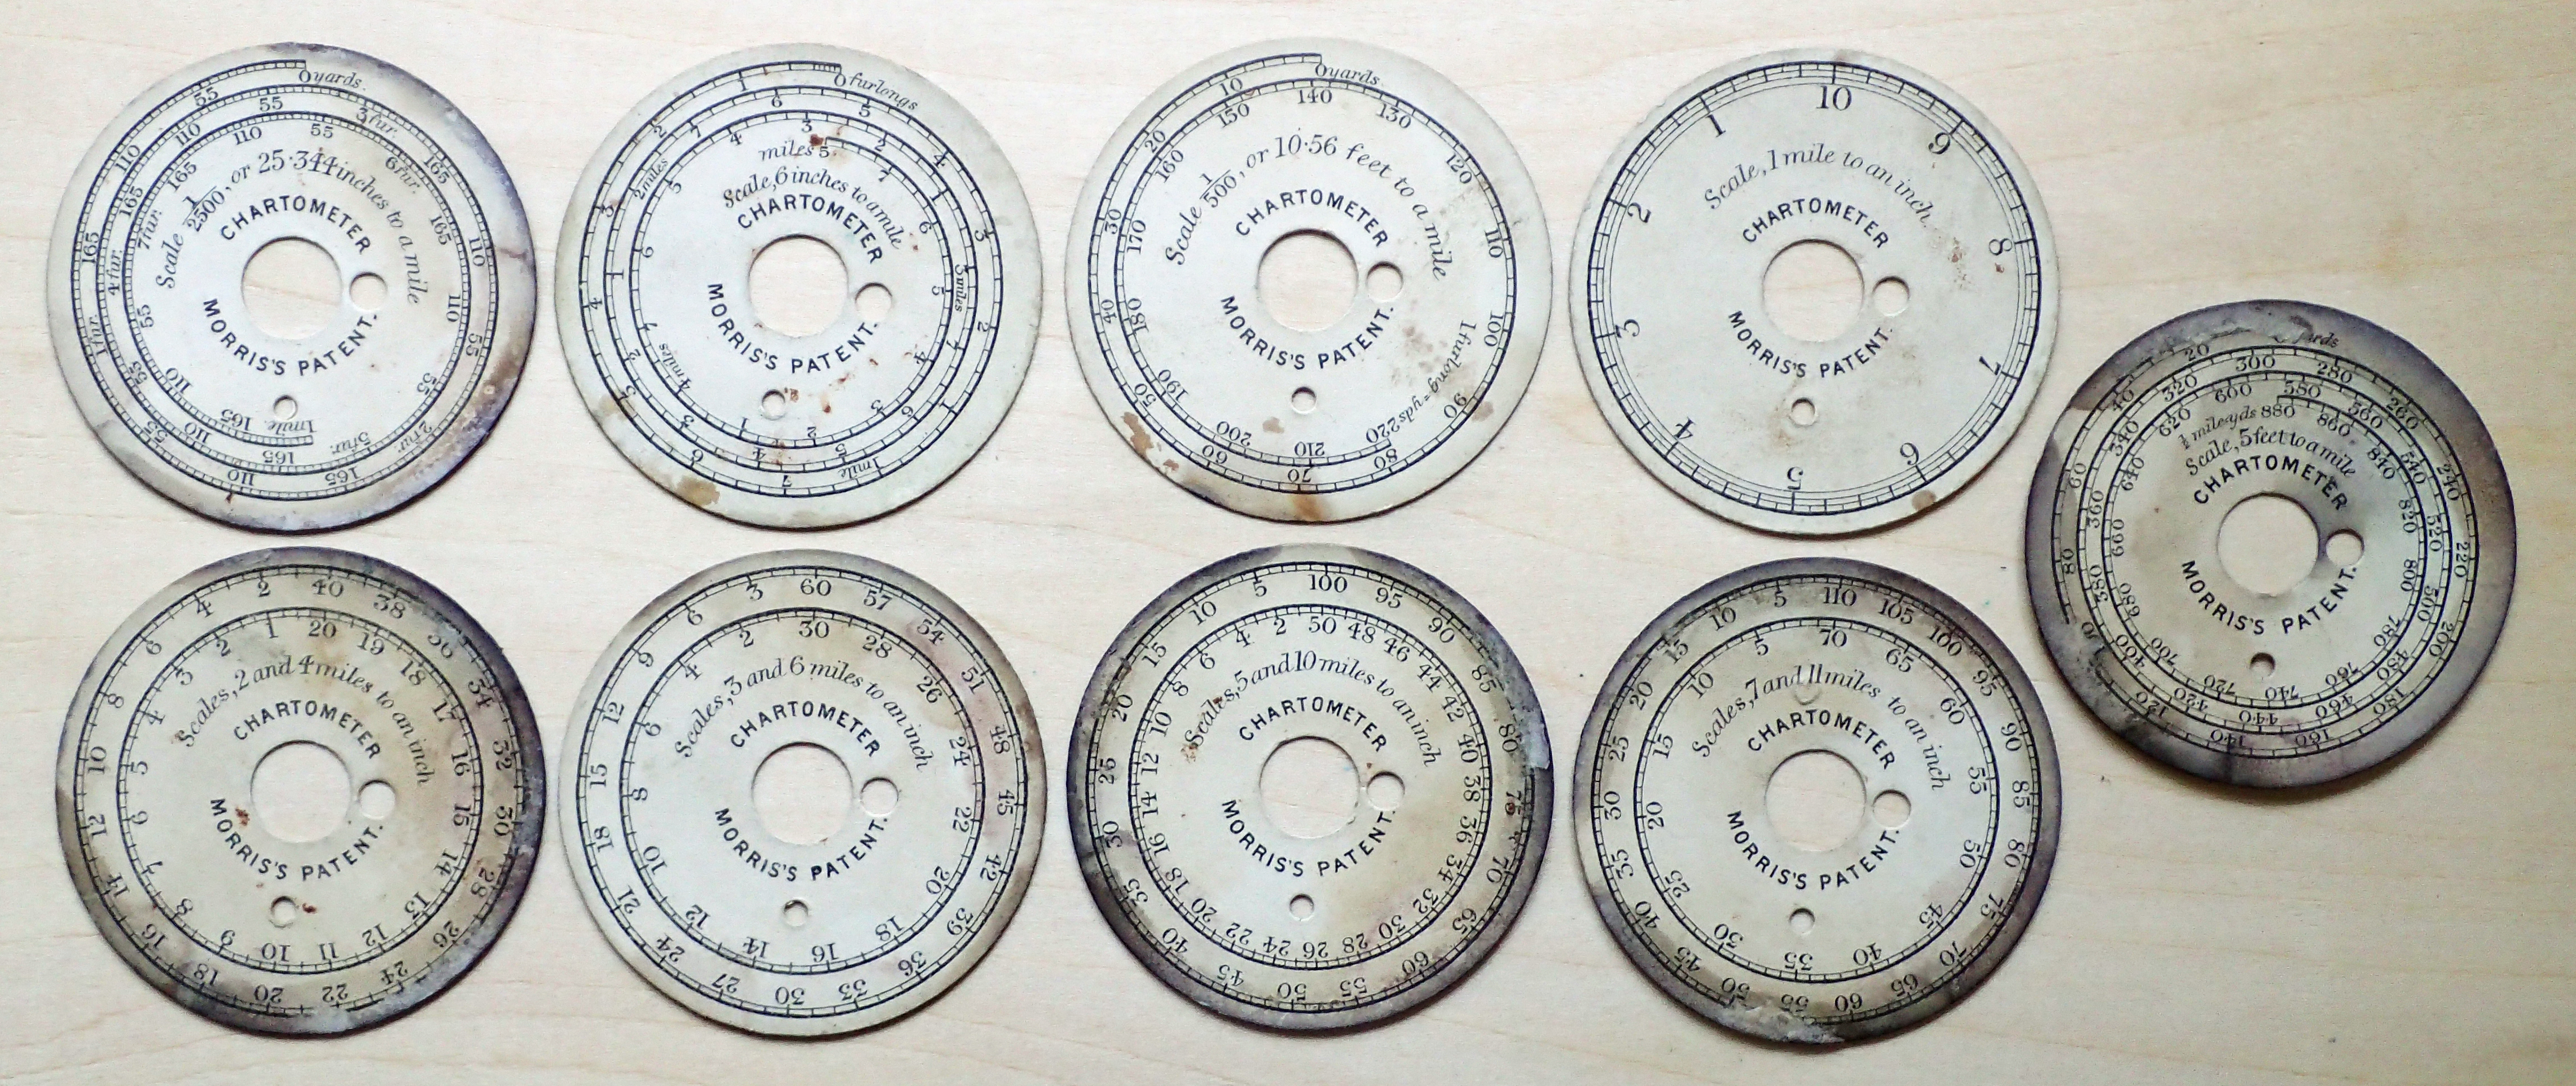 Scale cards for Morris's Patent Chartometer